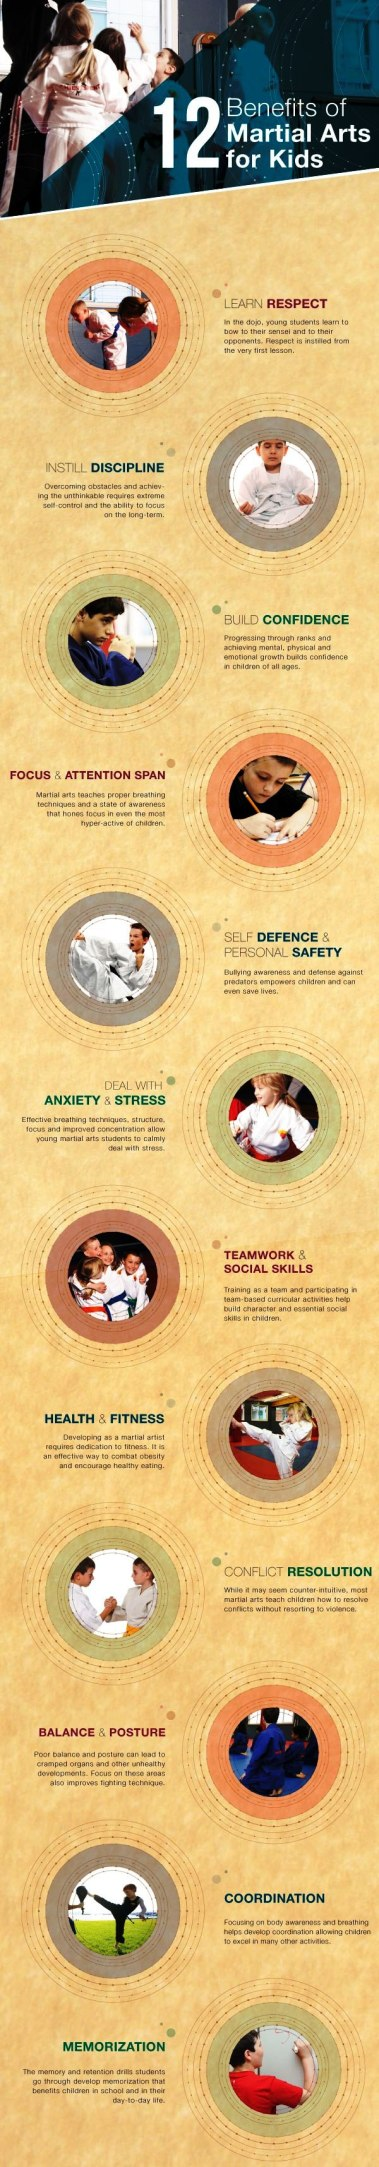 infographic_12_benefits_of_martial_arts_for_kids